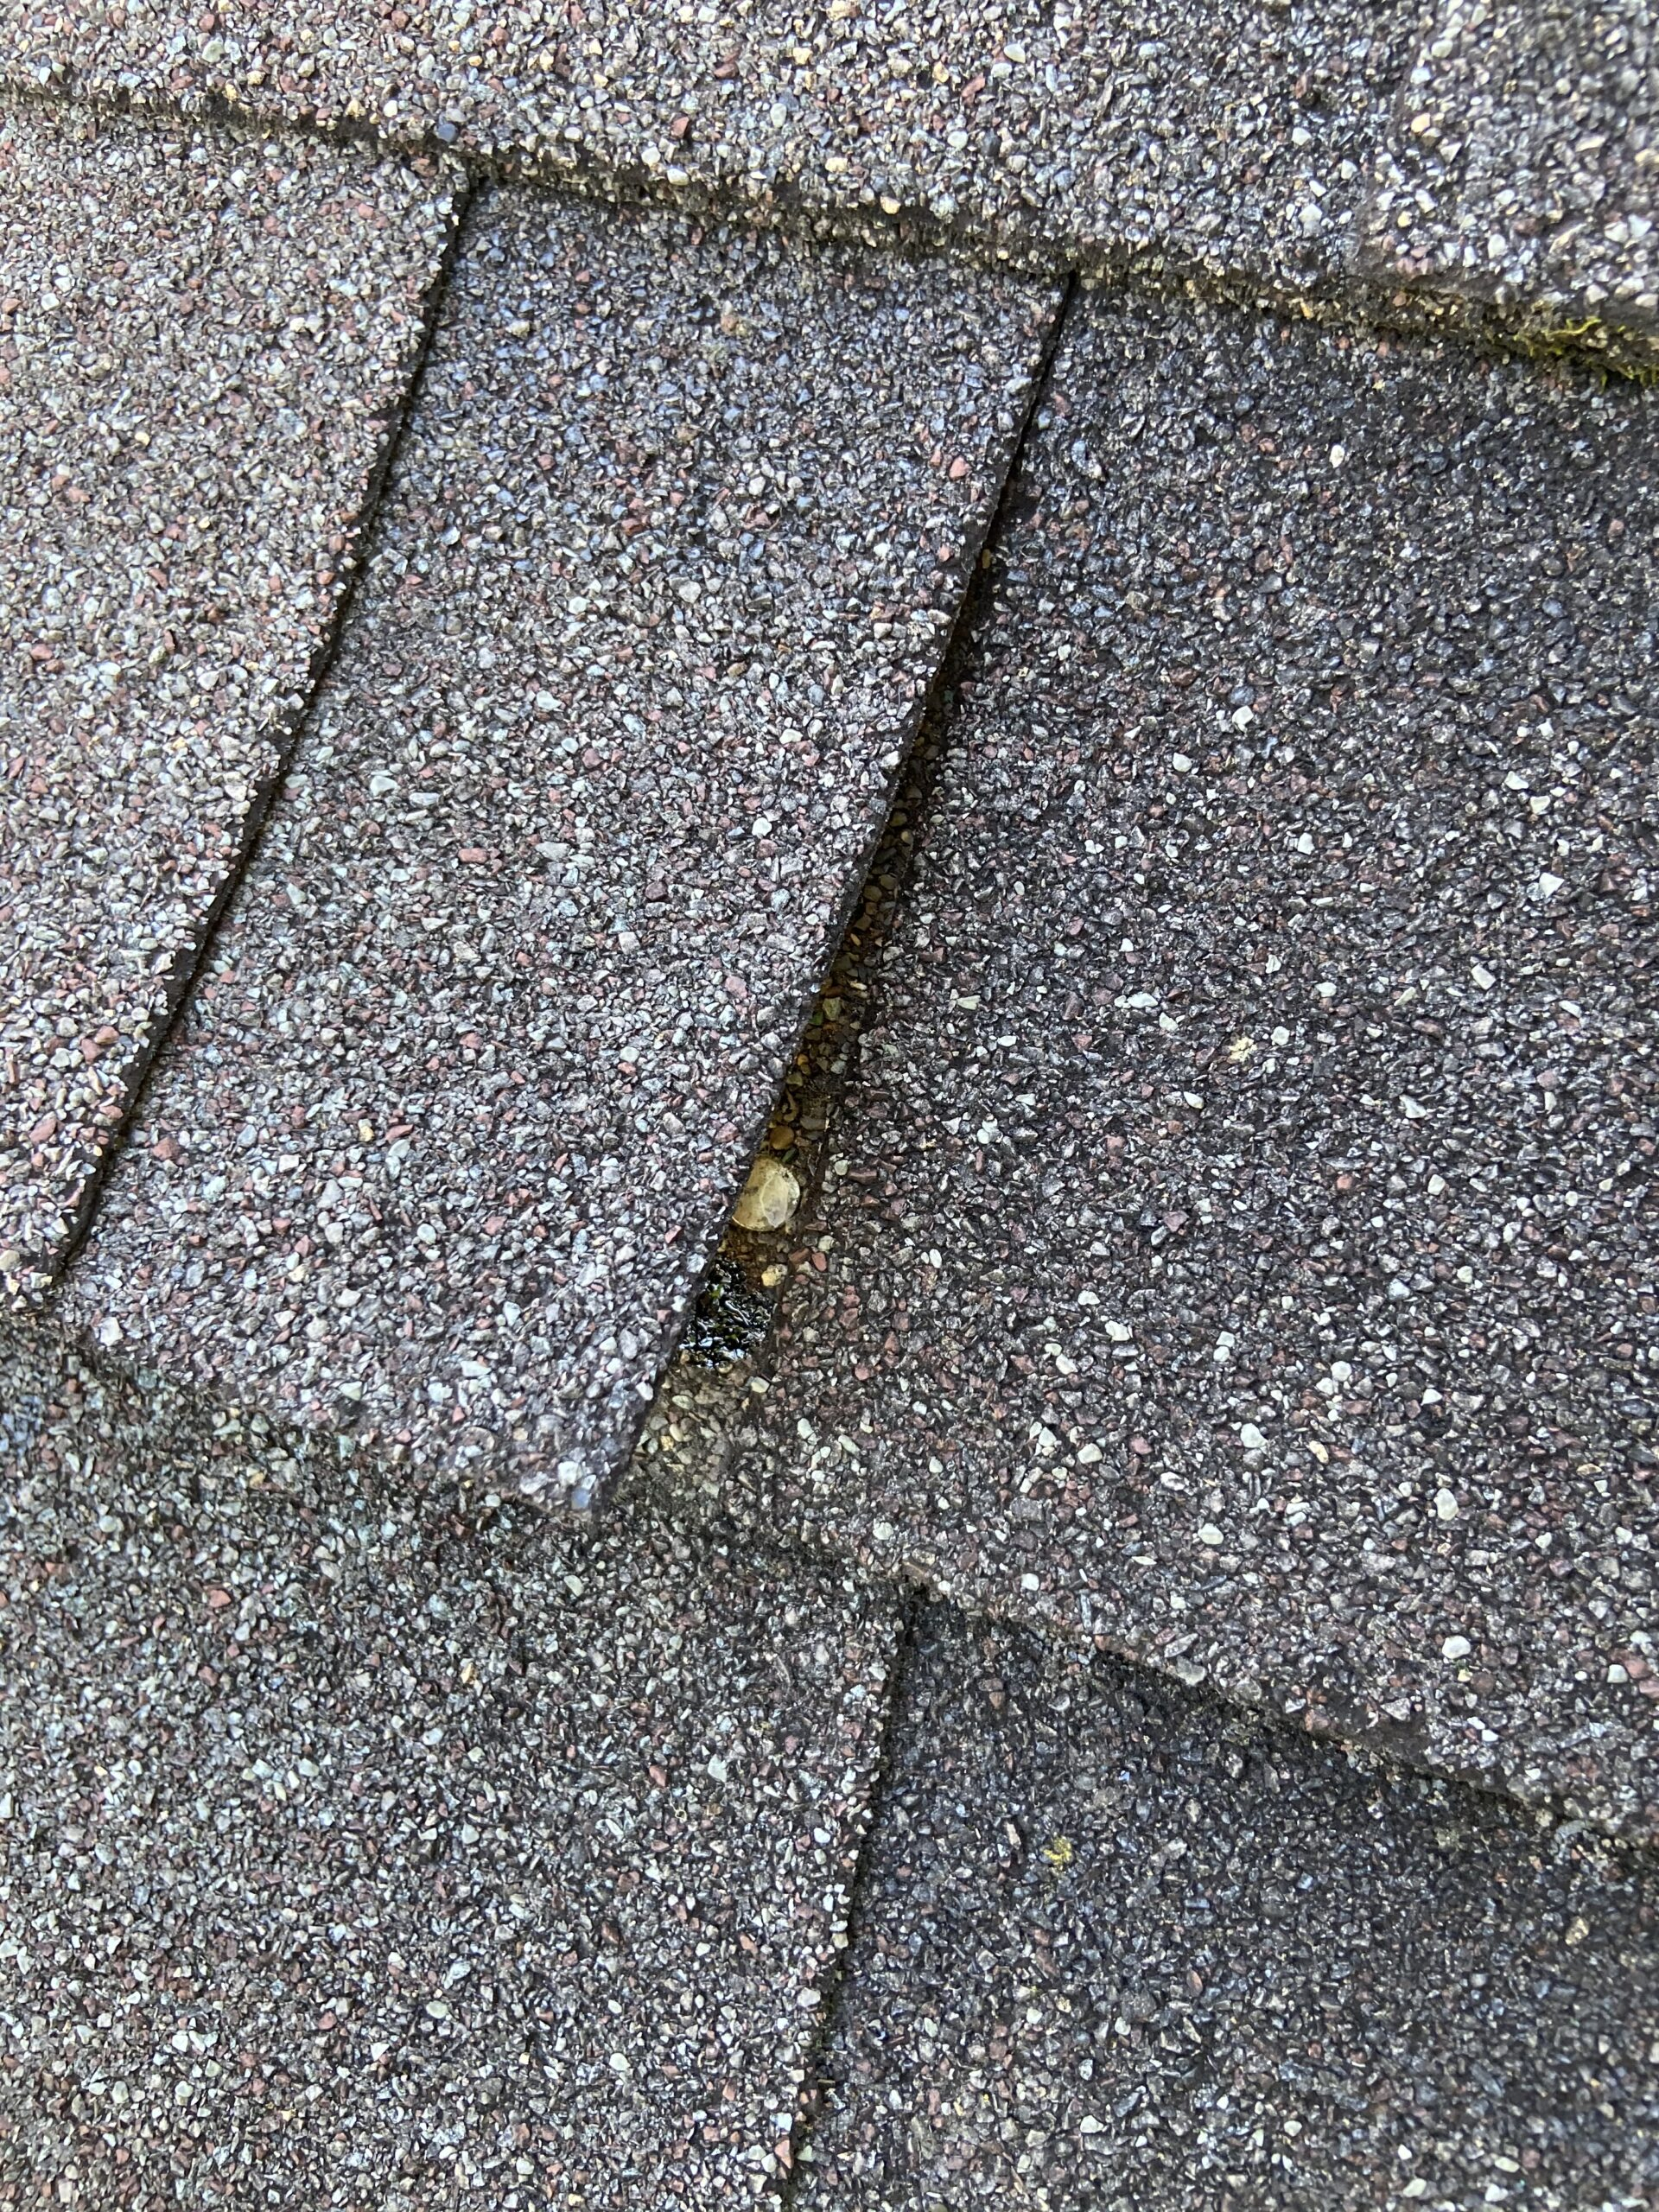 Is a picture of a nail that has missed placed on a shingle roof the nail is at the union of two shingles